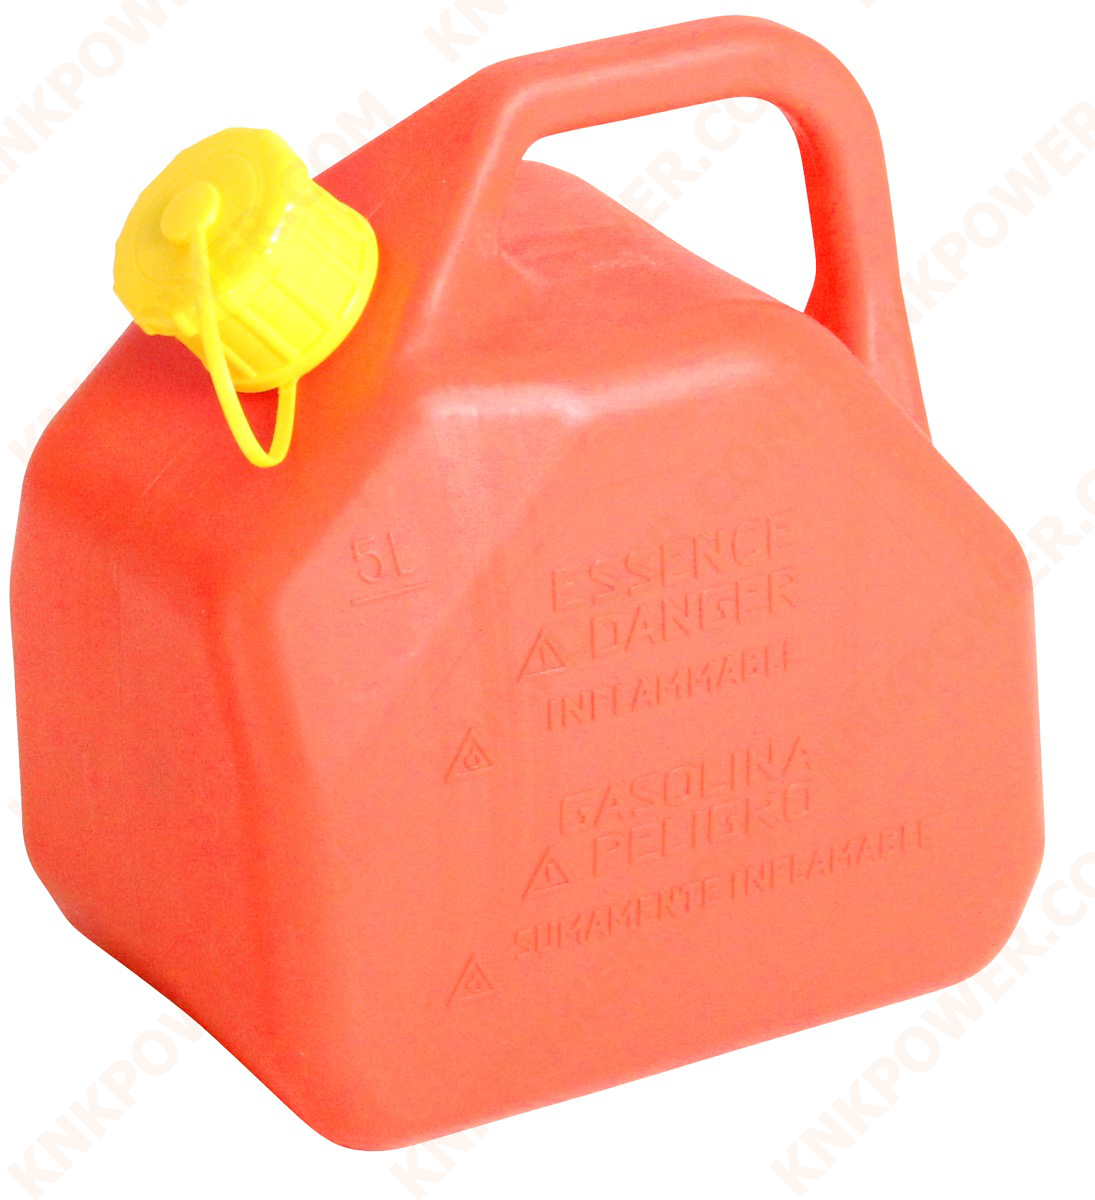 knkpower [13994] PLASTIC FUEL TANK